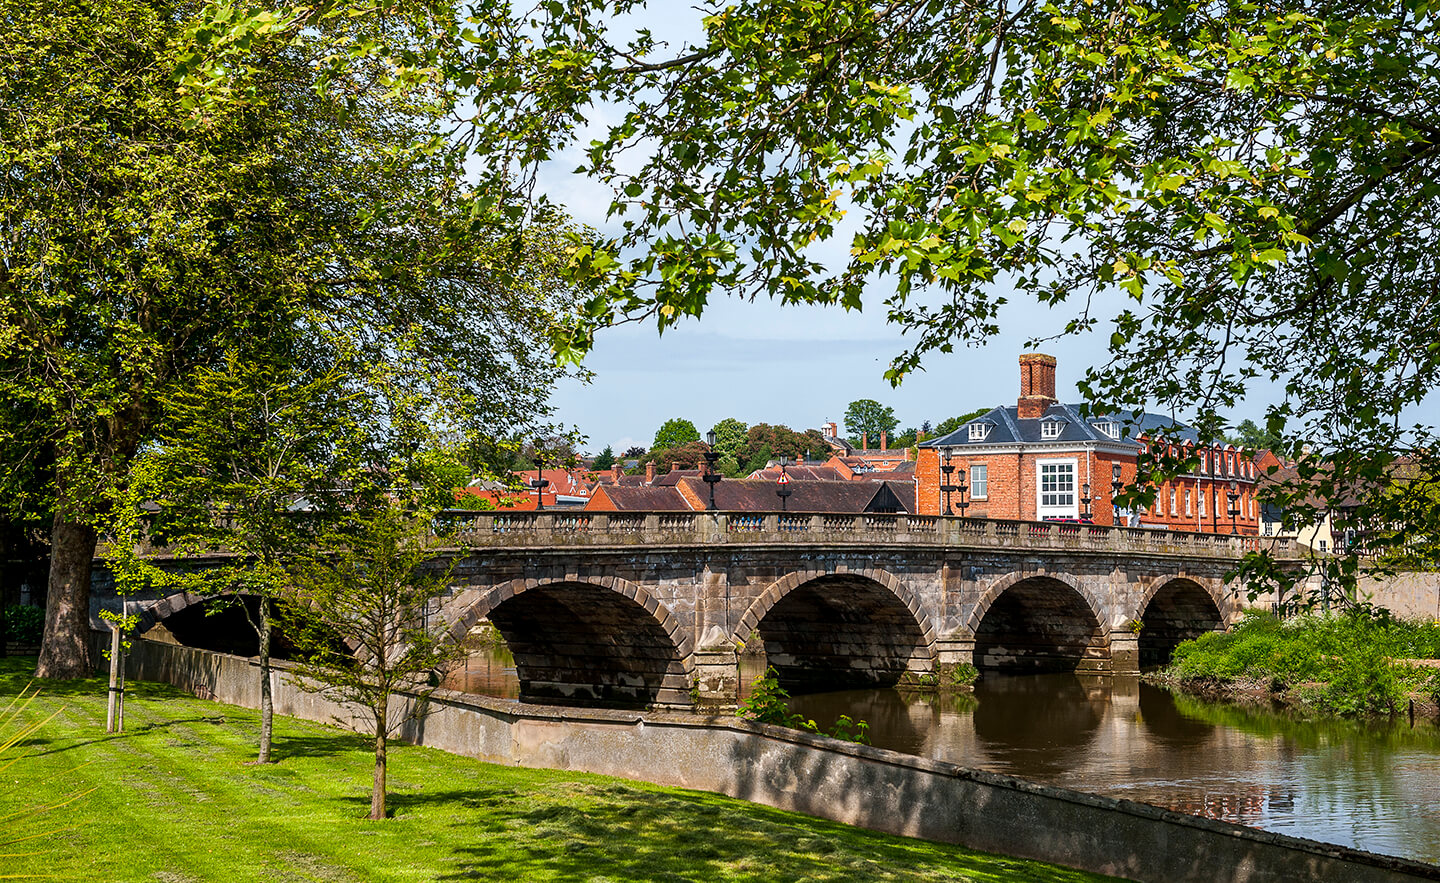 Shrewsbury - Local area 1.